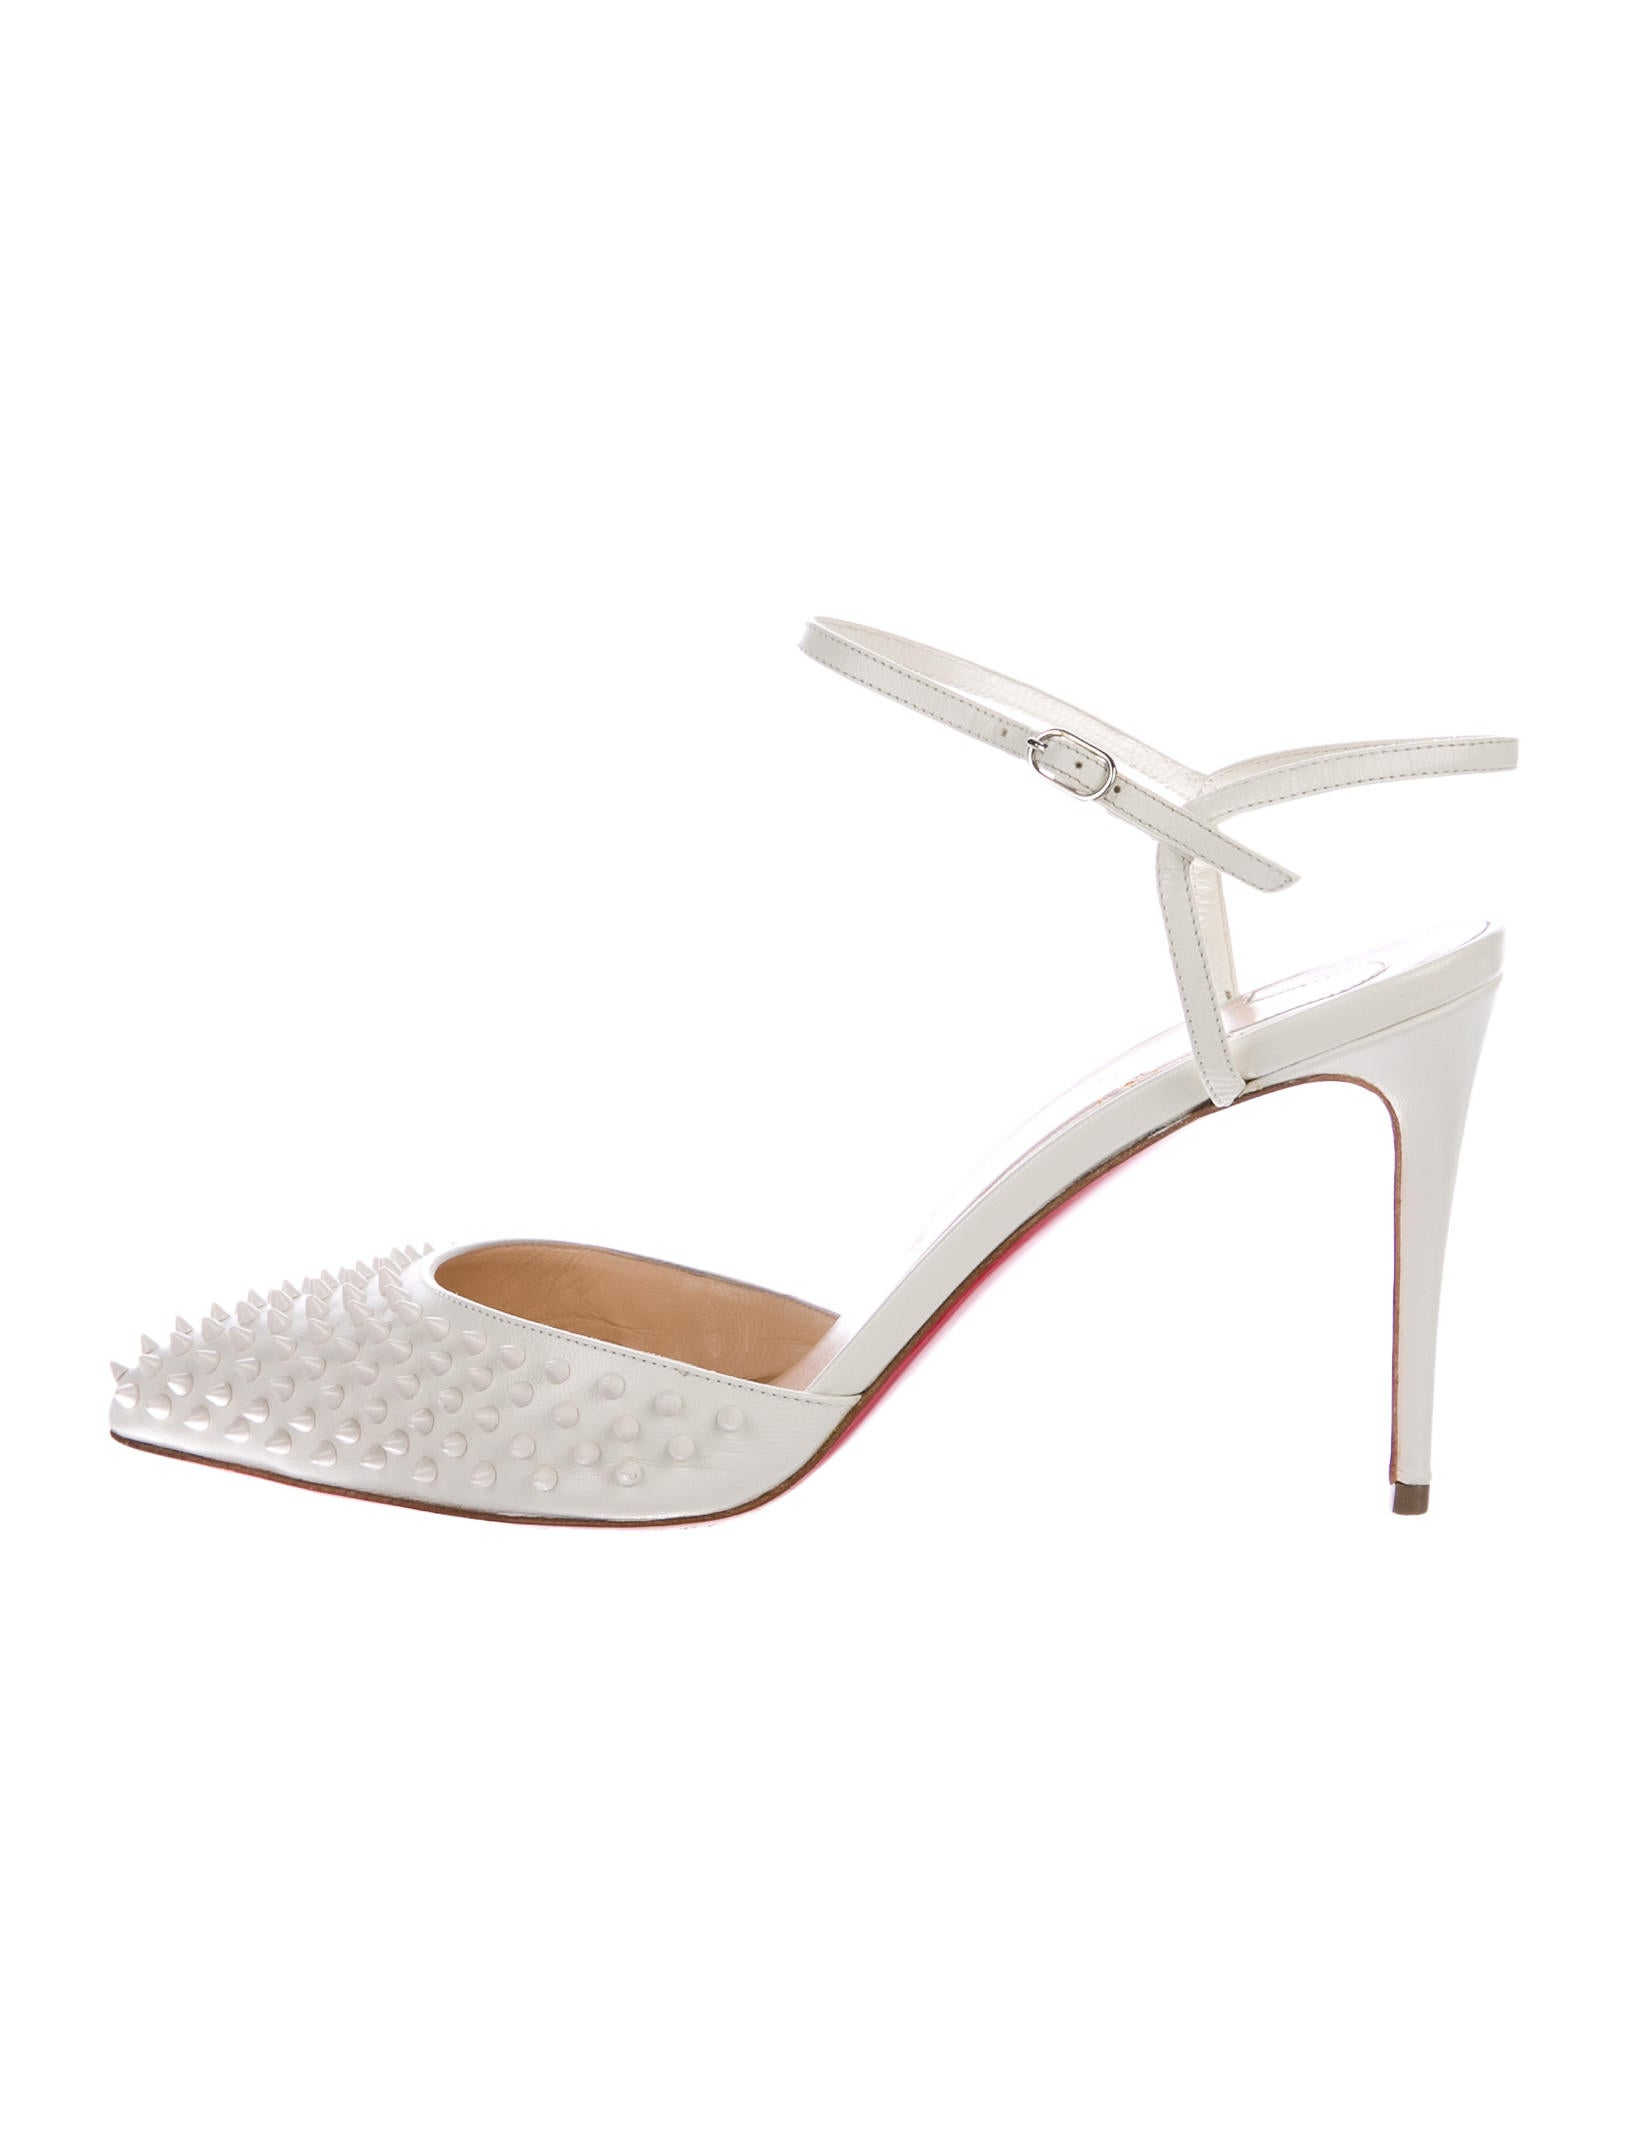 515672d8281 Atlassian CrowdID - Christian Louboutin Red Bottoms Shoes Brown To ...